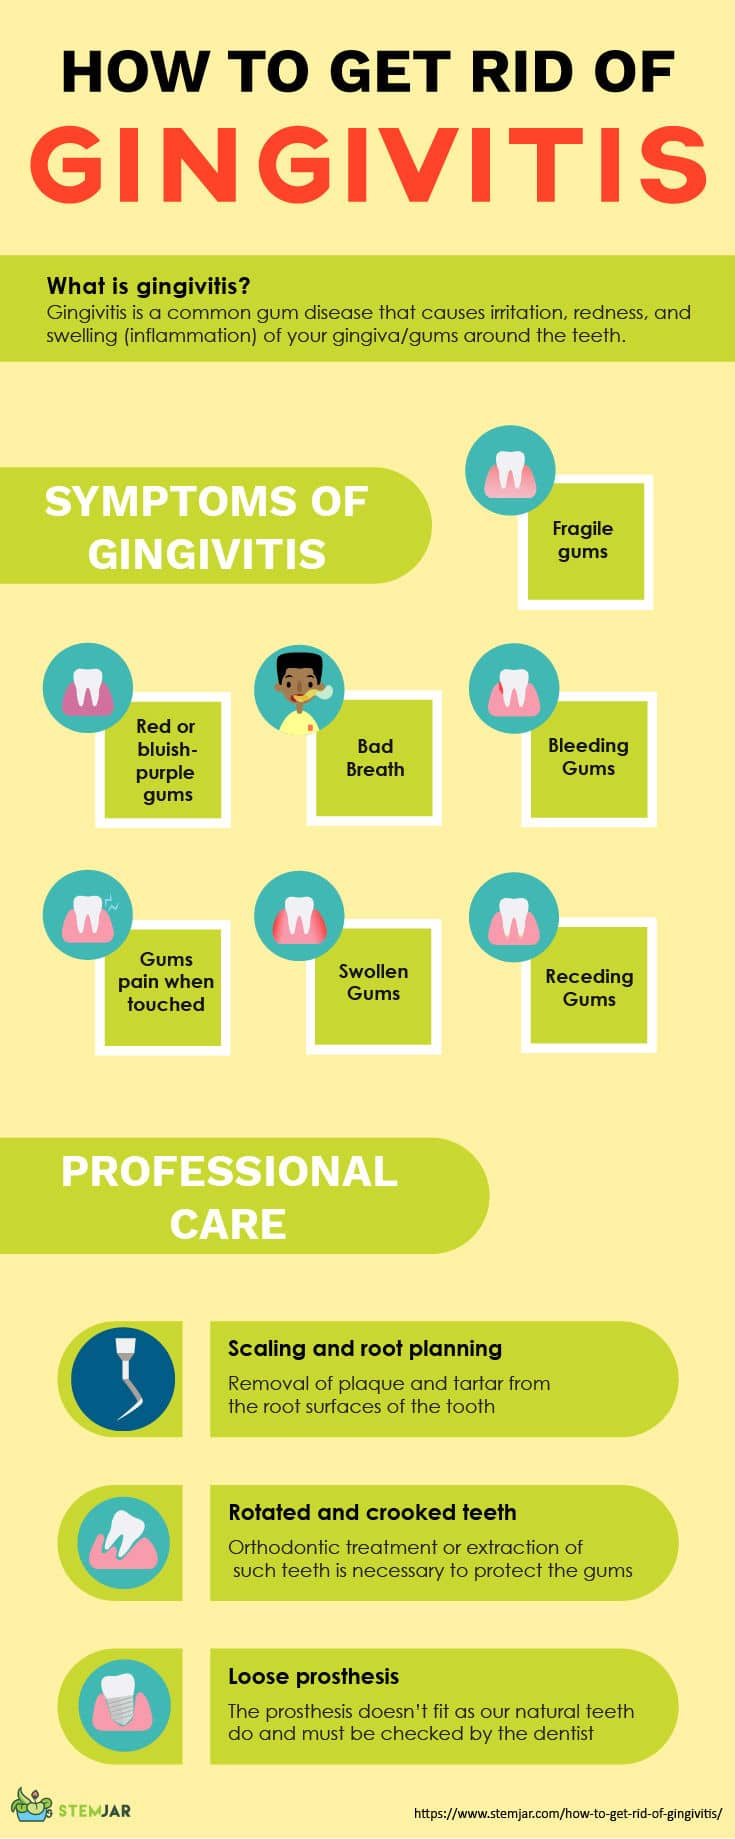 How to get rid of Gingivitis infographic